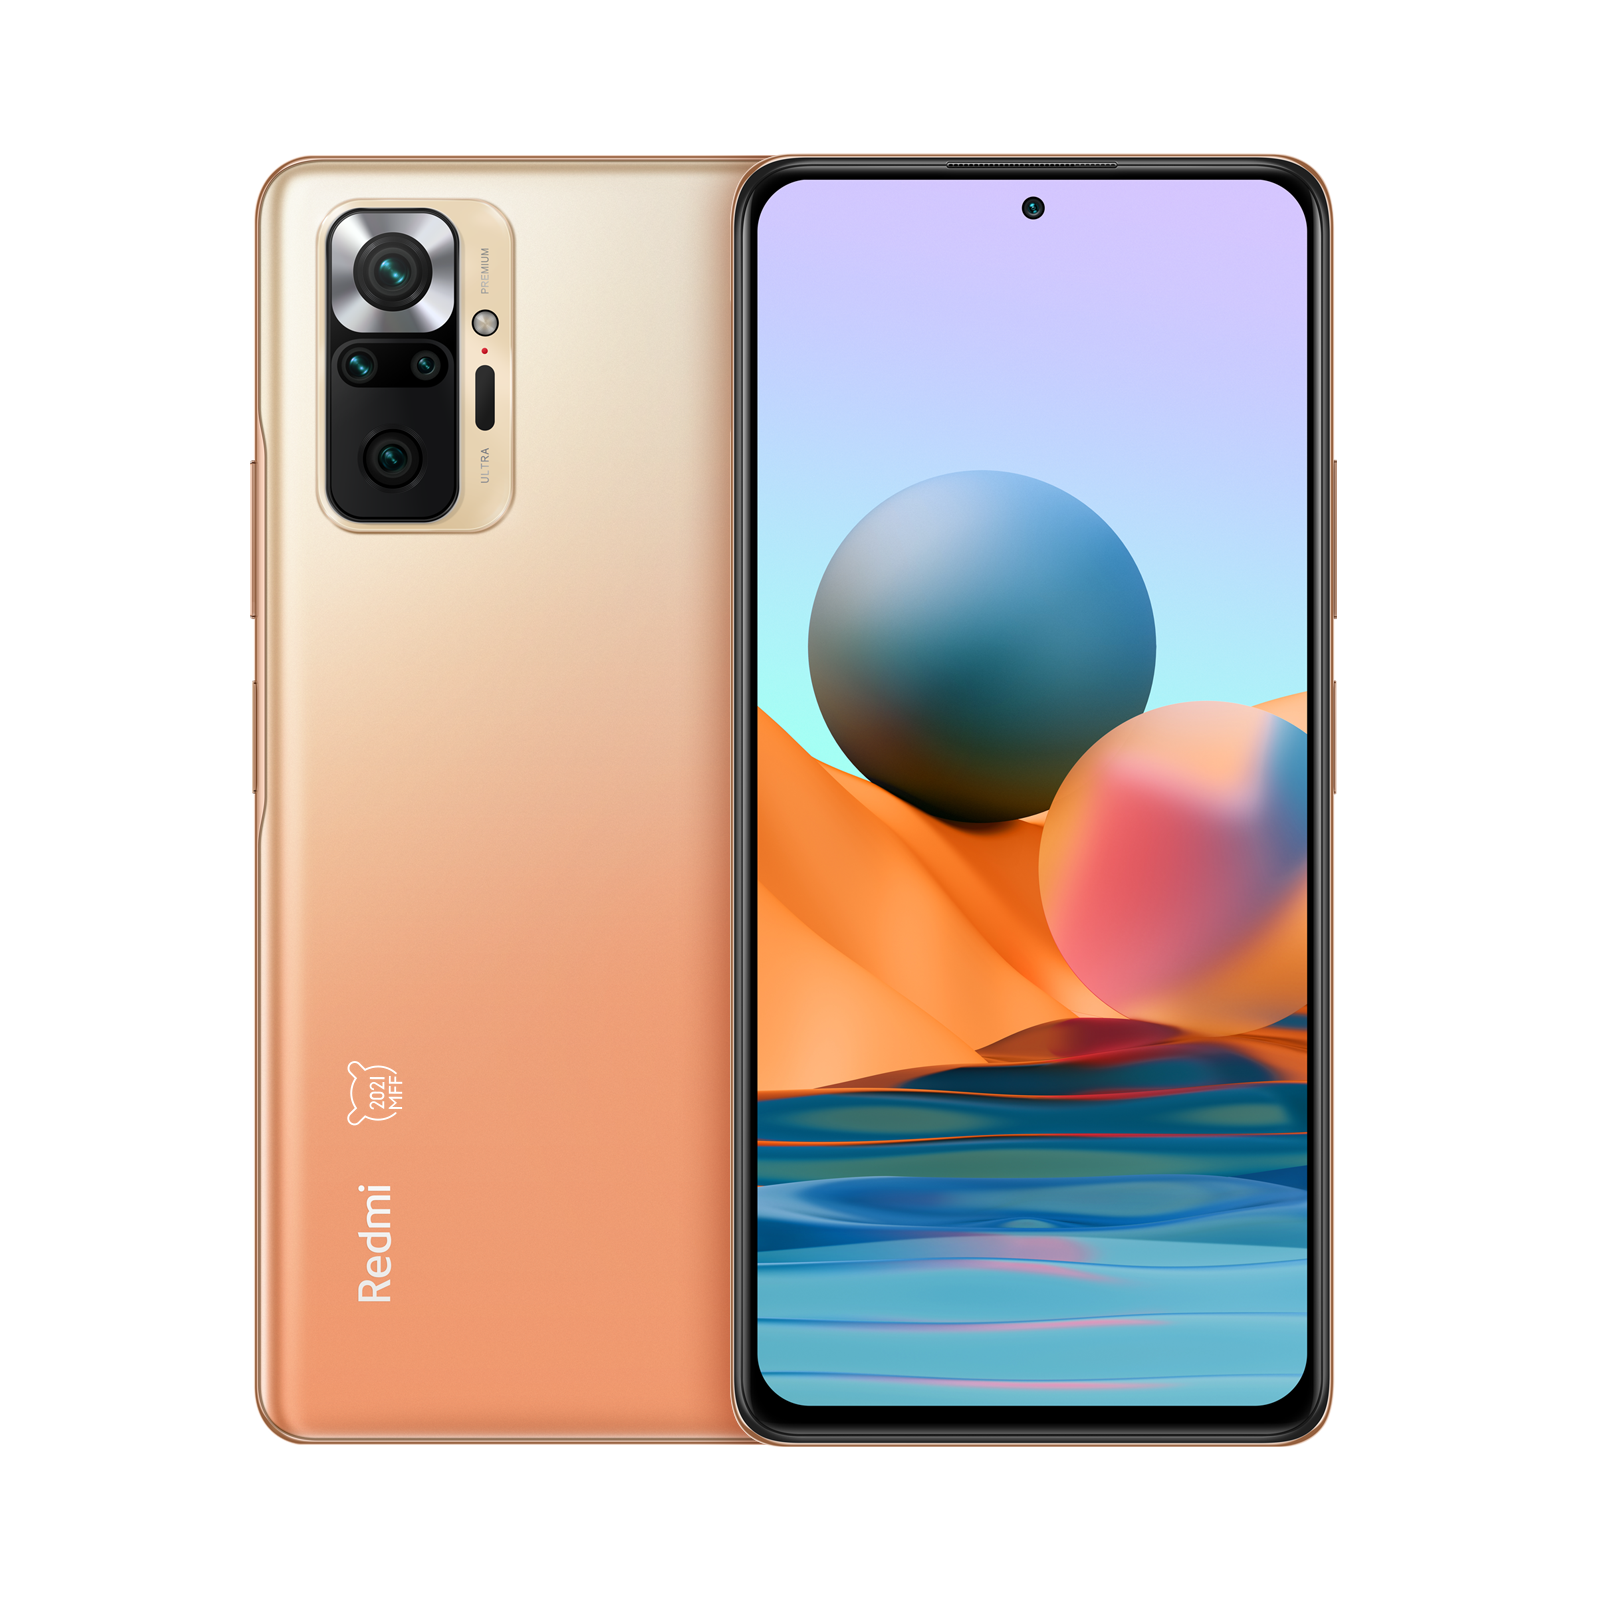 Global Version Xiaomi Redmi Note 10 Pro Smartphone Snapdragon 732G 108MP Camera 5020mAh Battery 120HZ AMOLED Screen With NFC enlarge